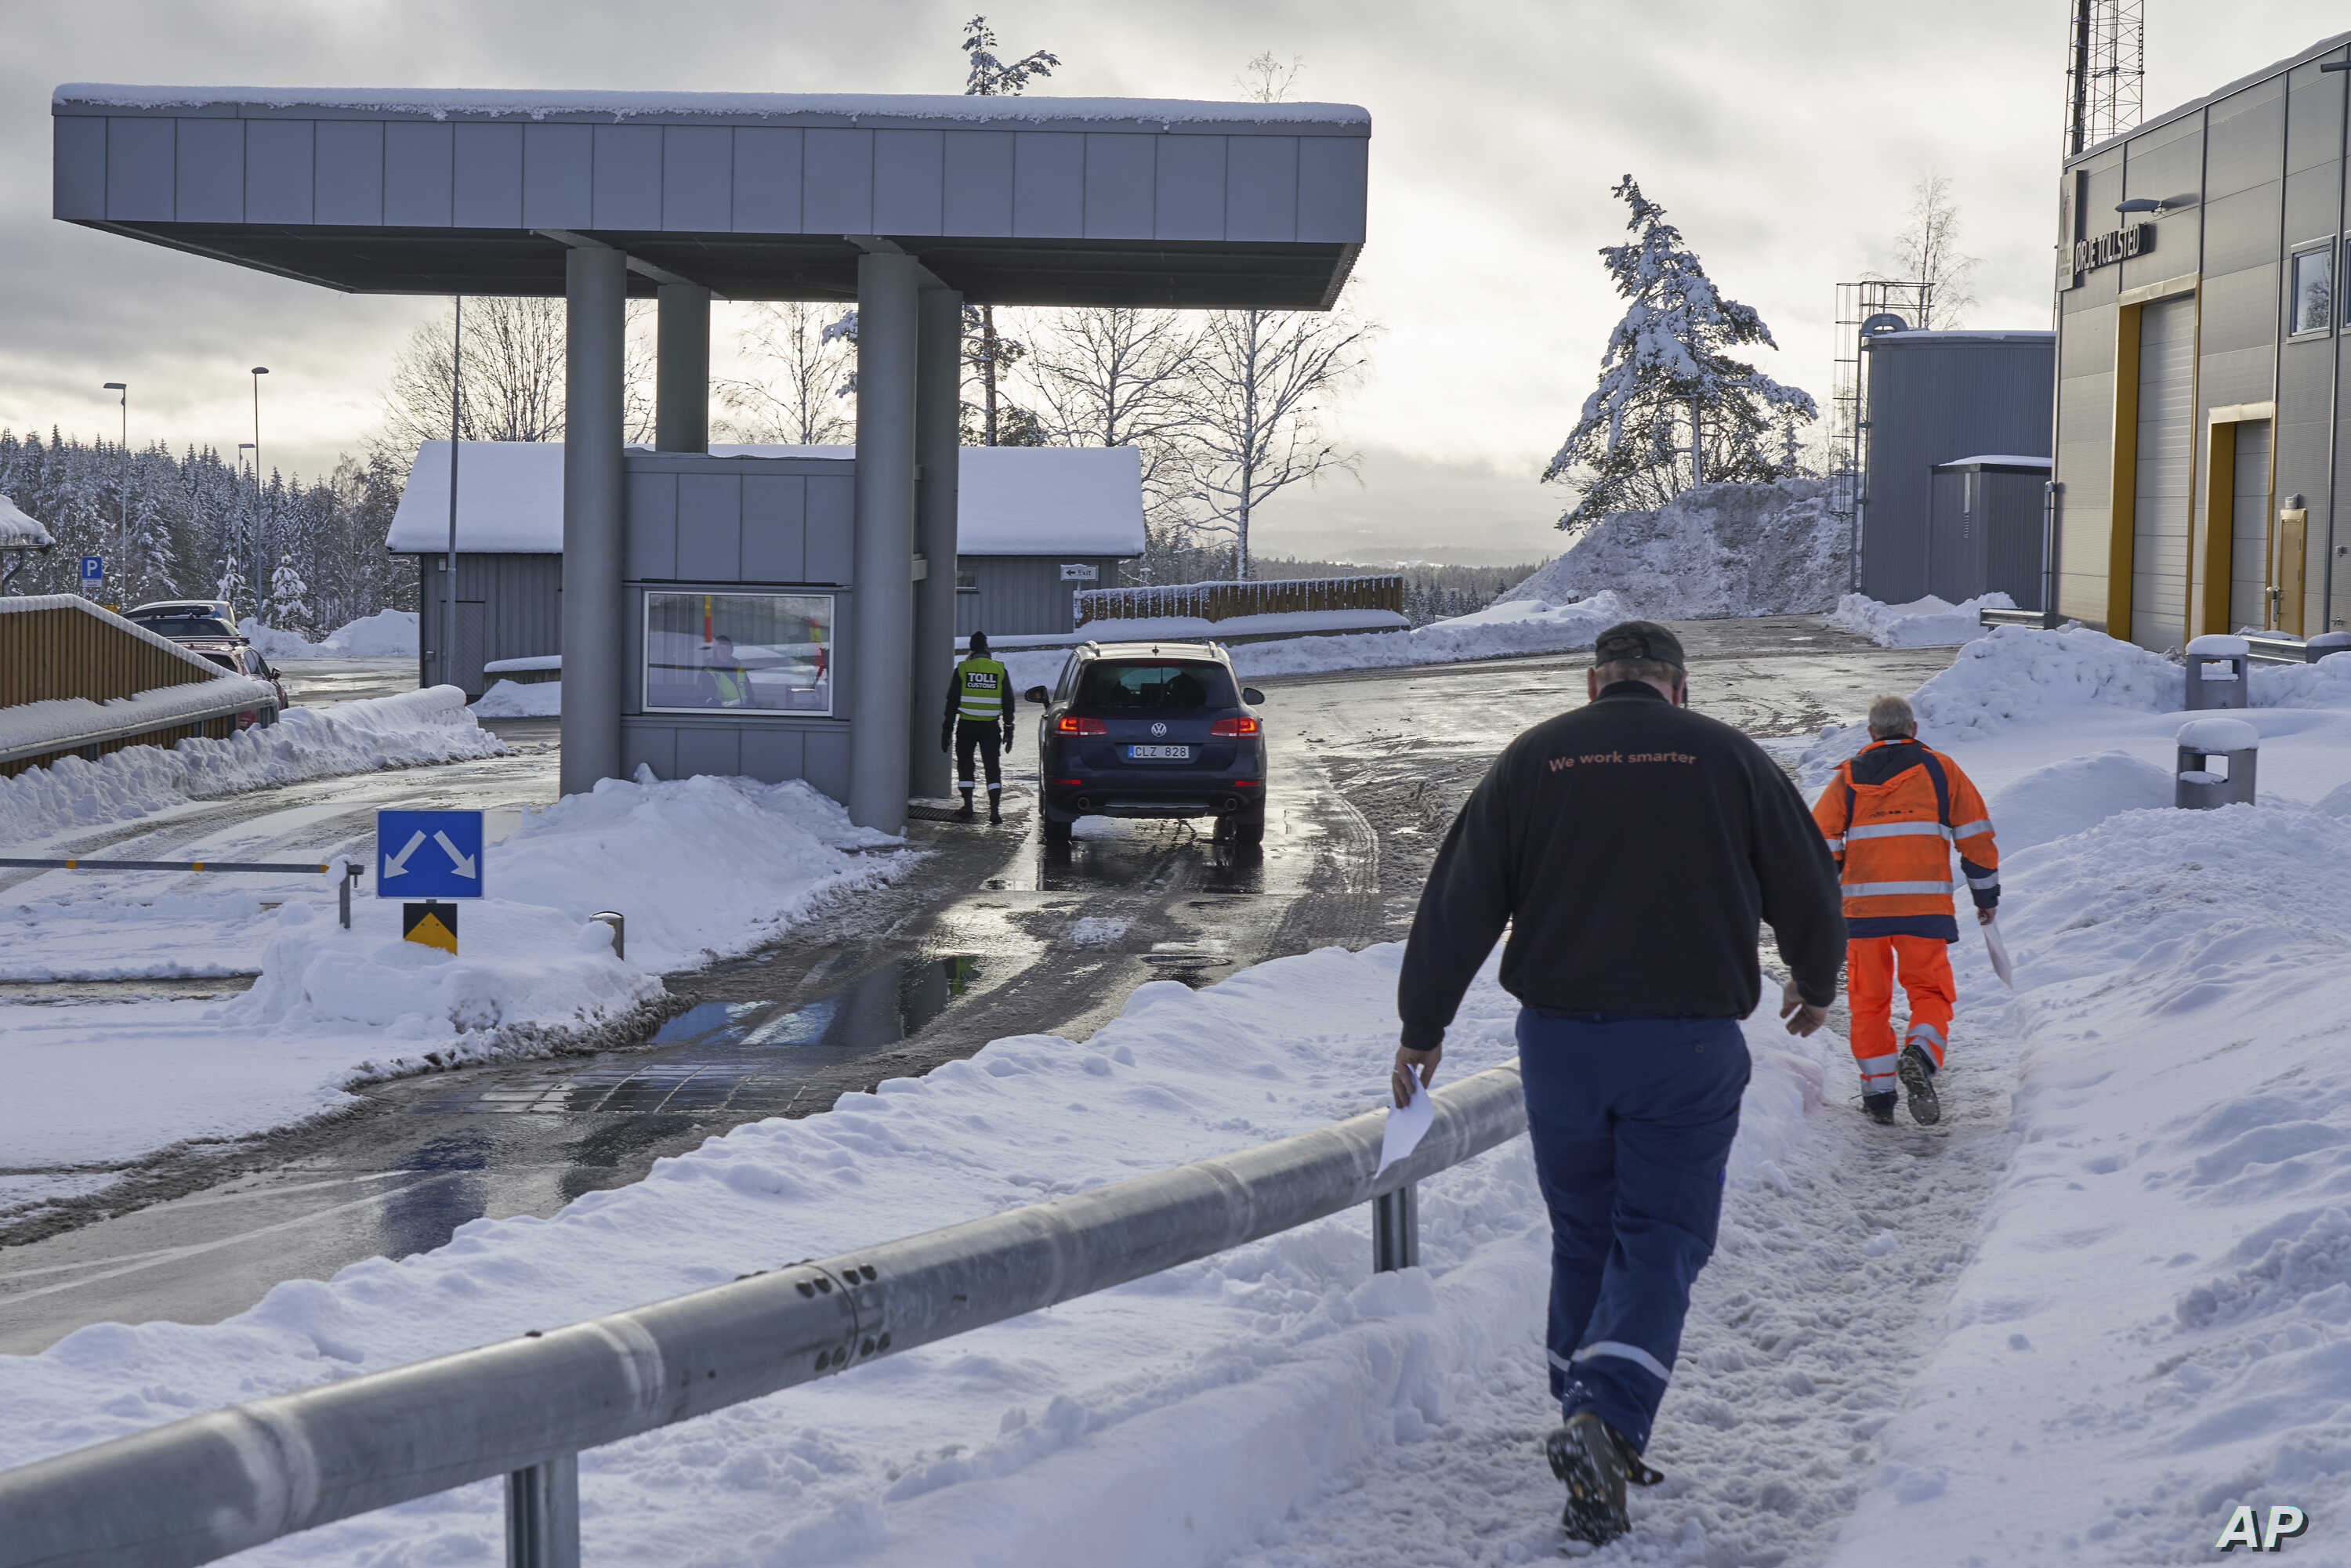 Truck drivers with customs clearance documents walk toward the Norwegian Customs office at the Orje border as officers perform checks on cars entering from Sweden, Feb. 8 2019.